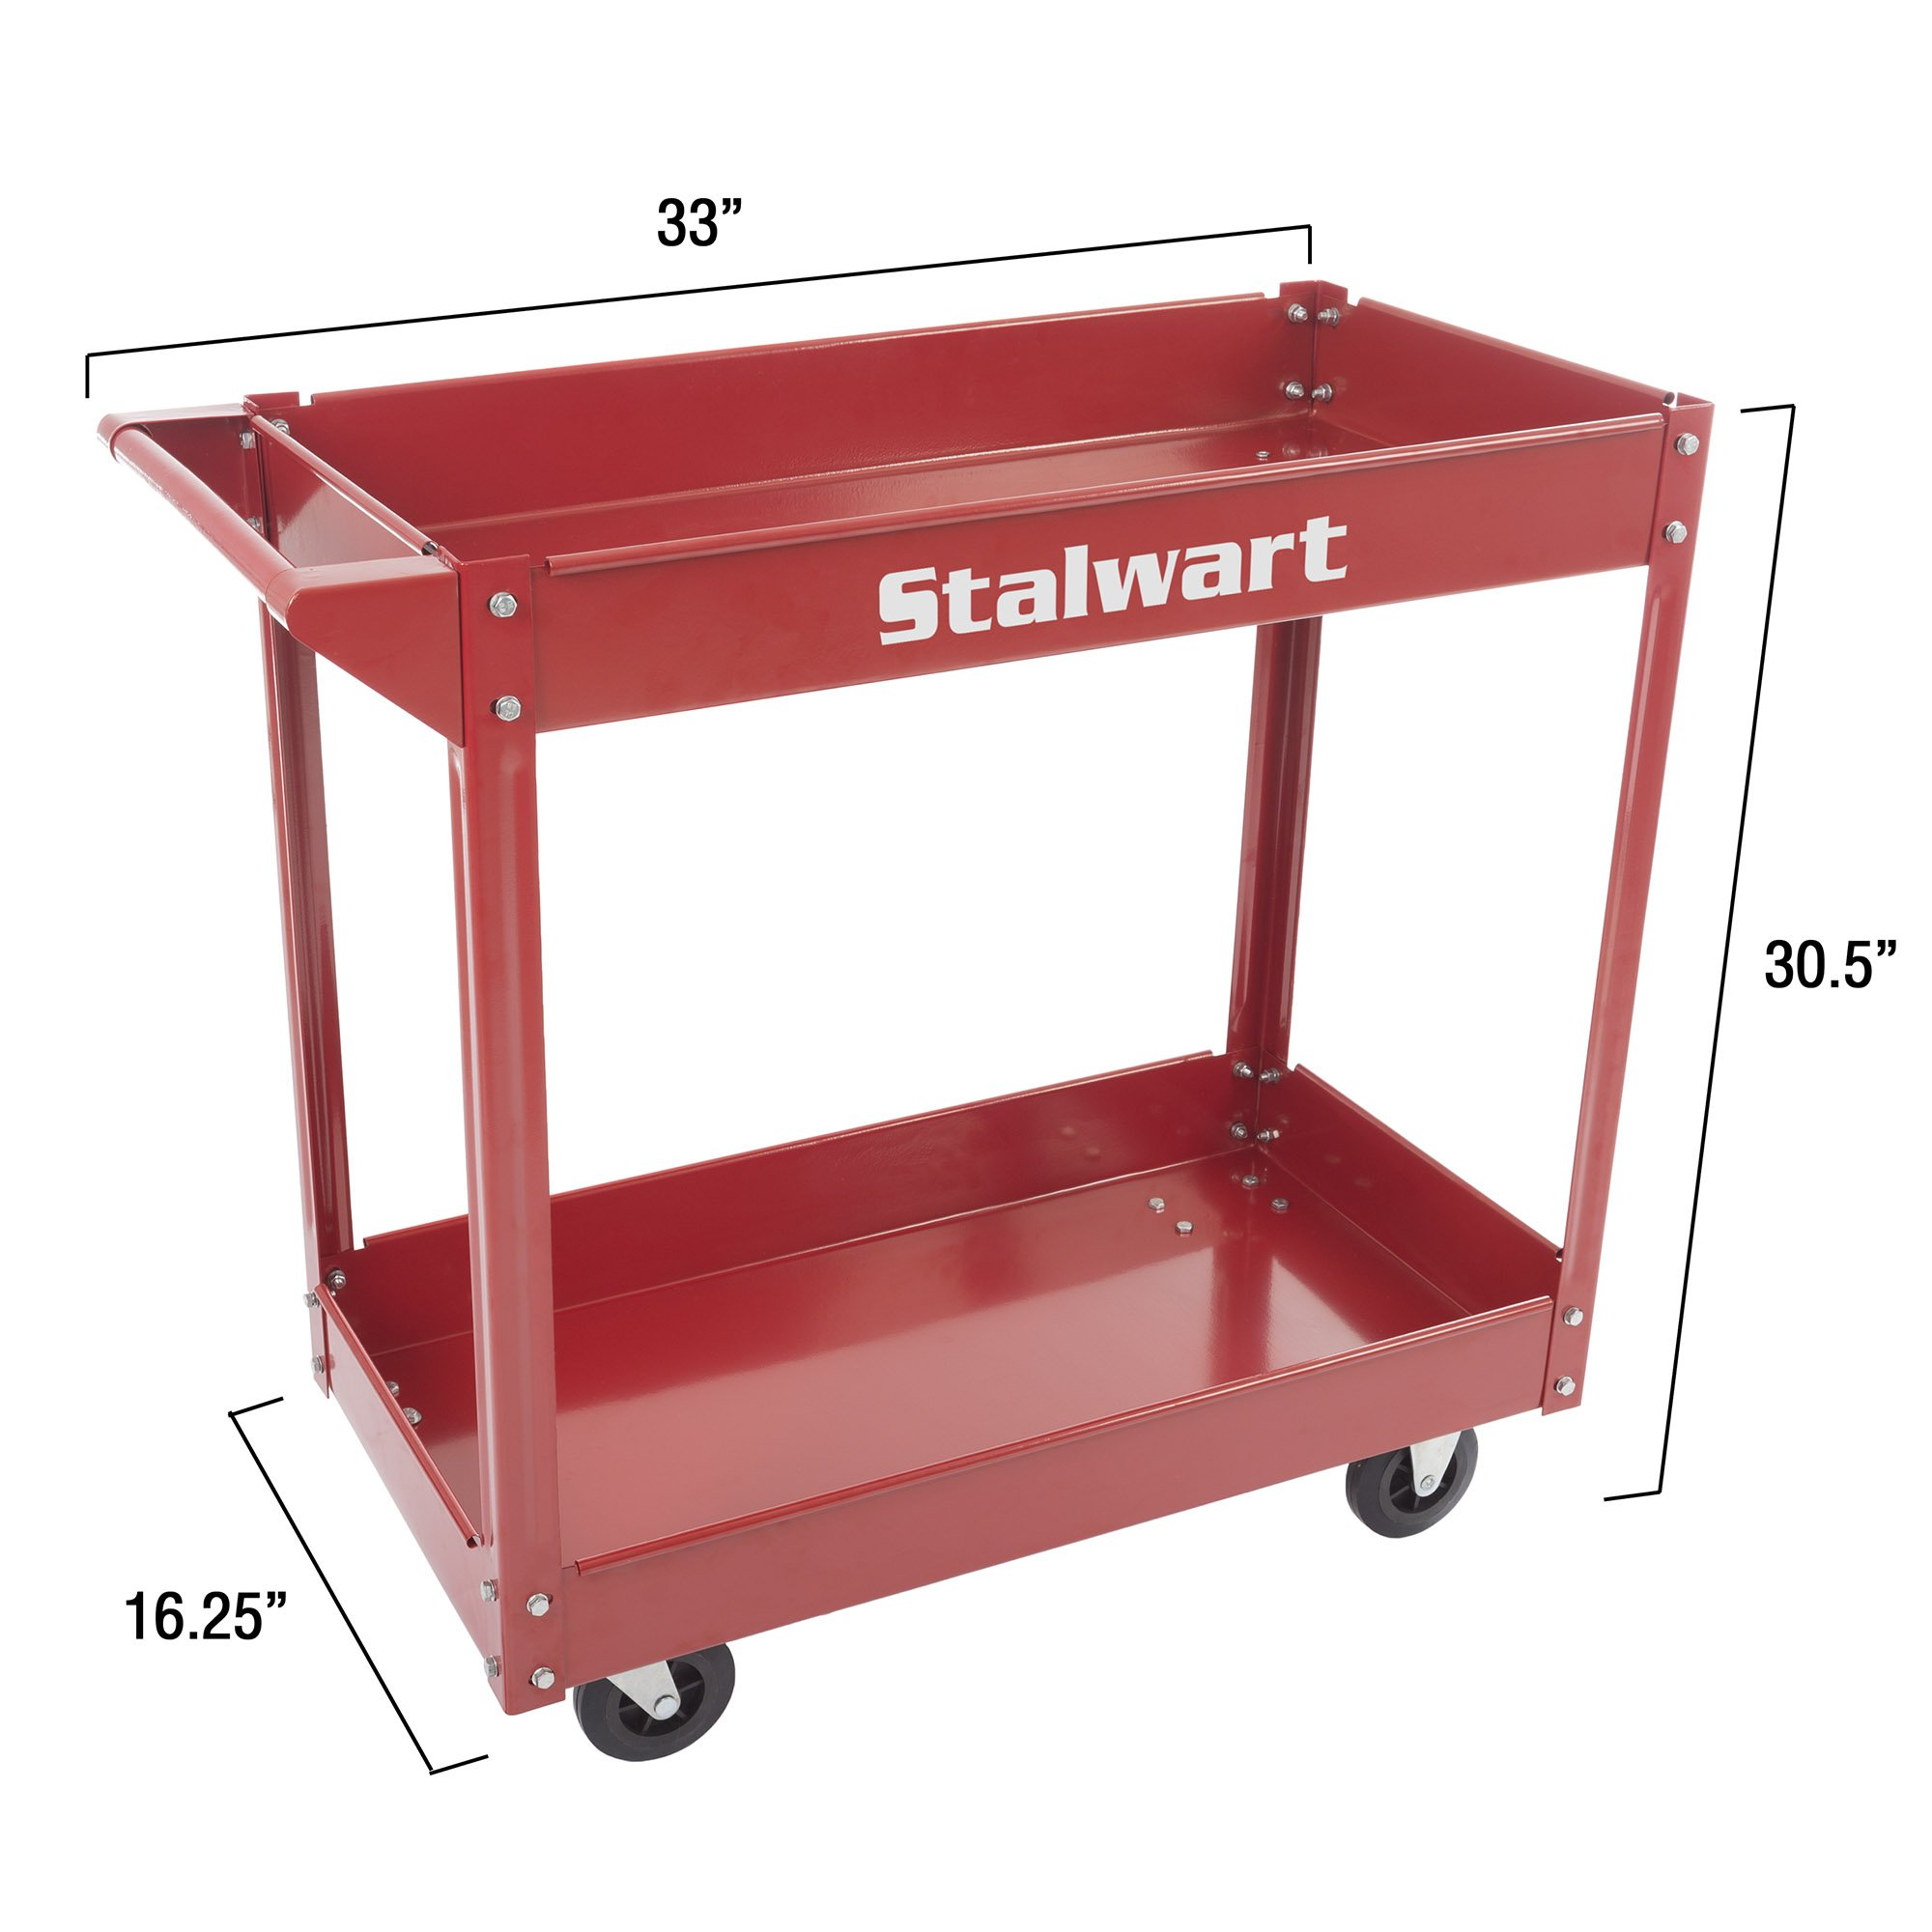 Metal Service Utility Cart, Heavy Duty Supply Cart with Two Storage Tray Shelves- 330 lbs Capacity By Stalwart (Red) by Stalwart (Image #1)